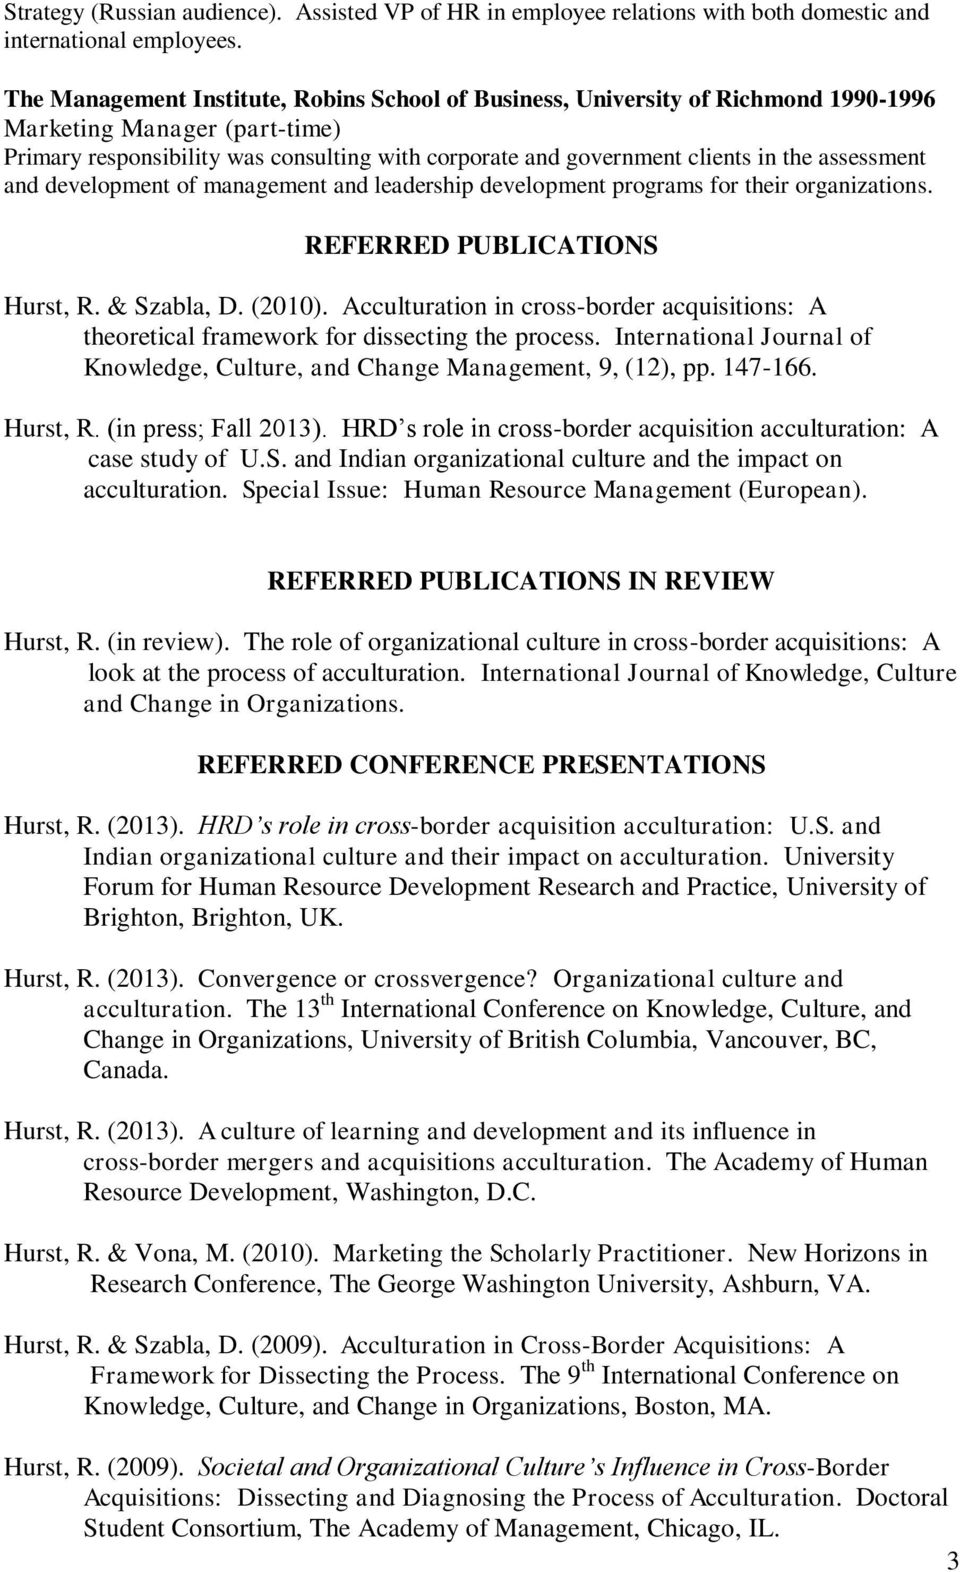 assessment and development of management and leadership development programs for their organizations. REFERRED PUBLICATIONS Hurst, R. & Szabla, D. (2010).